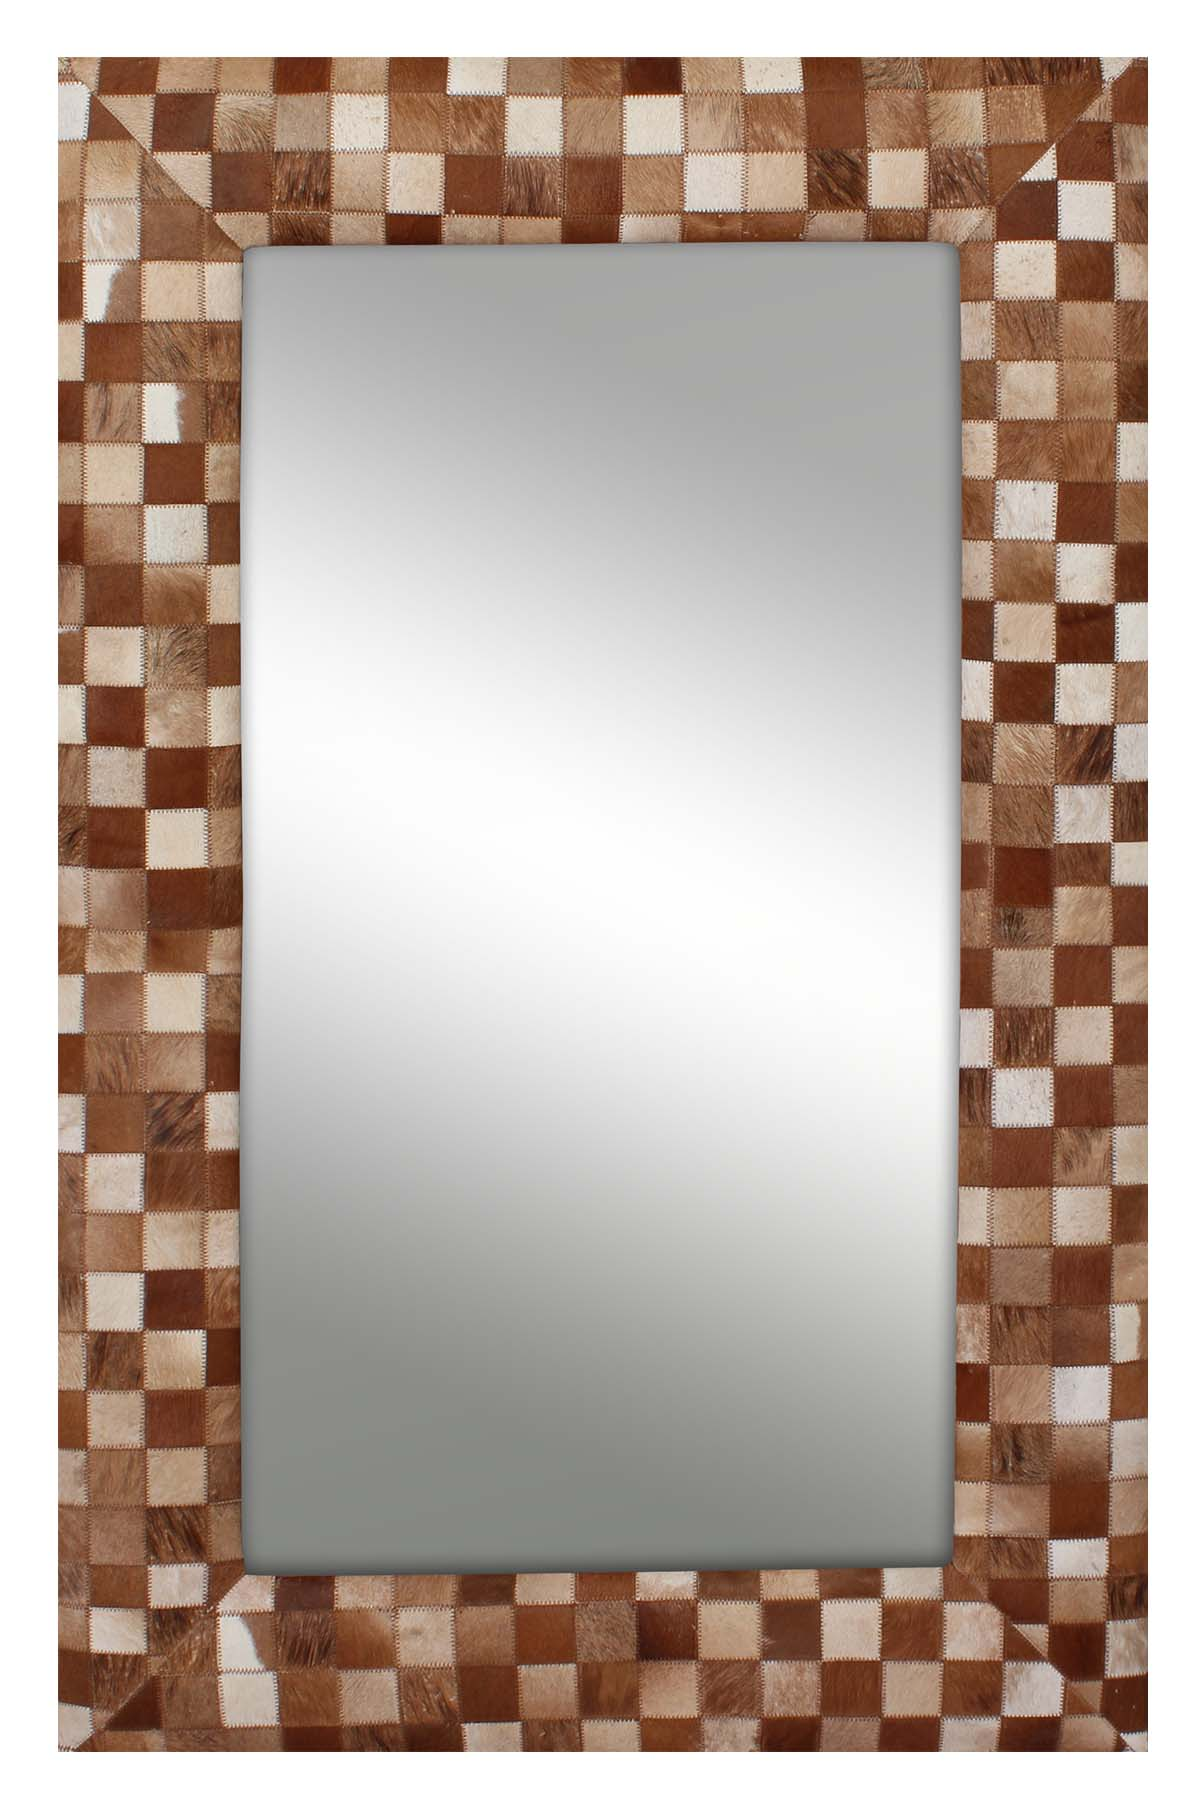 Buy Mirror Frame online in India at Best Prices